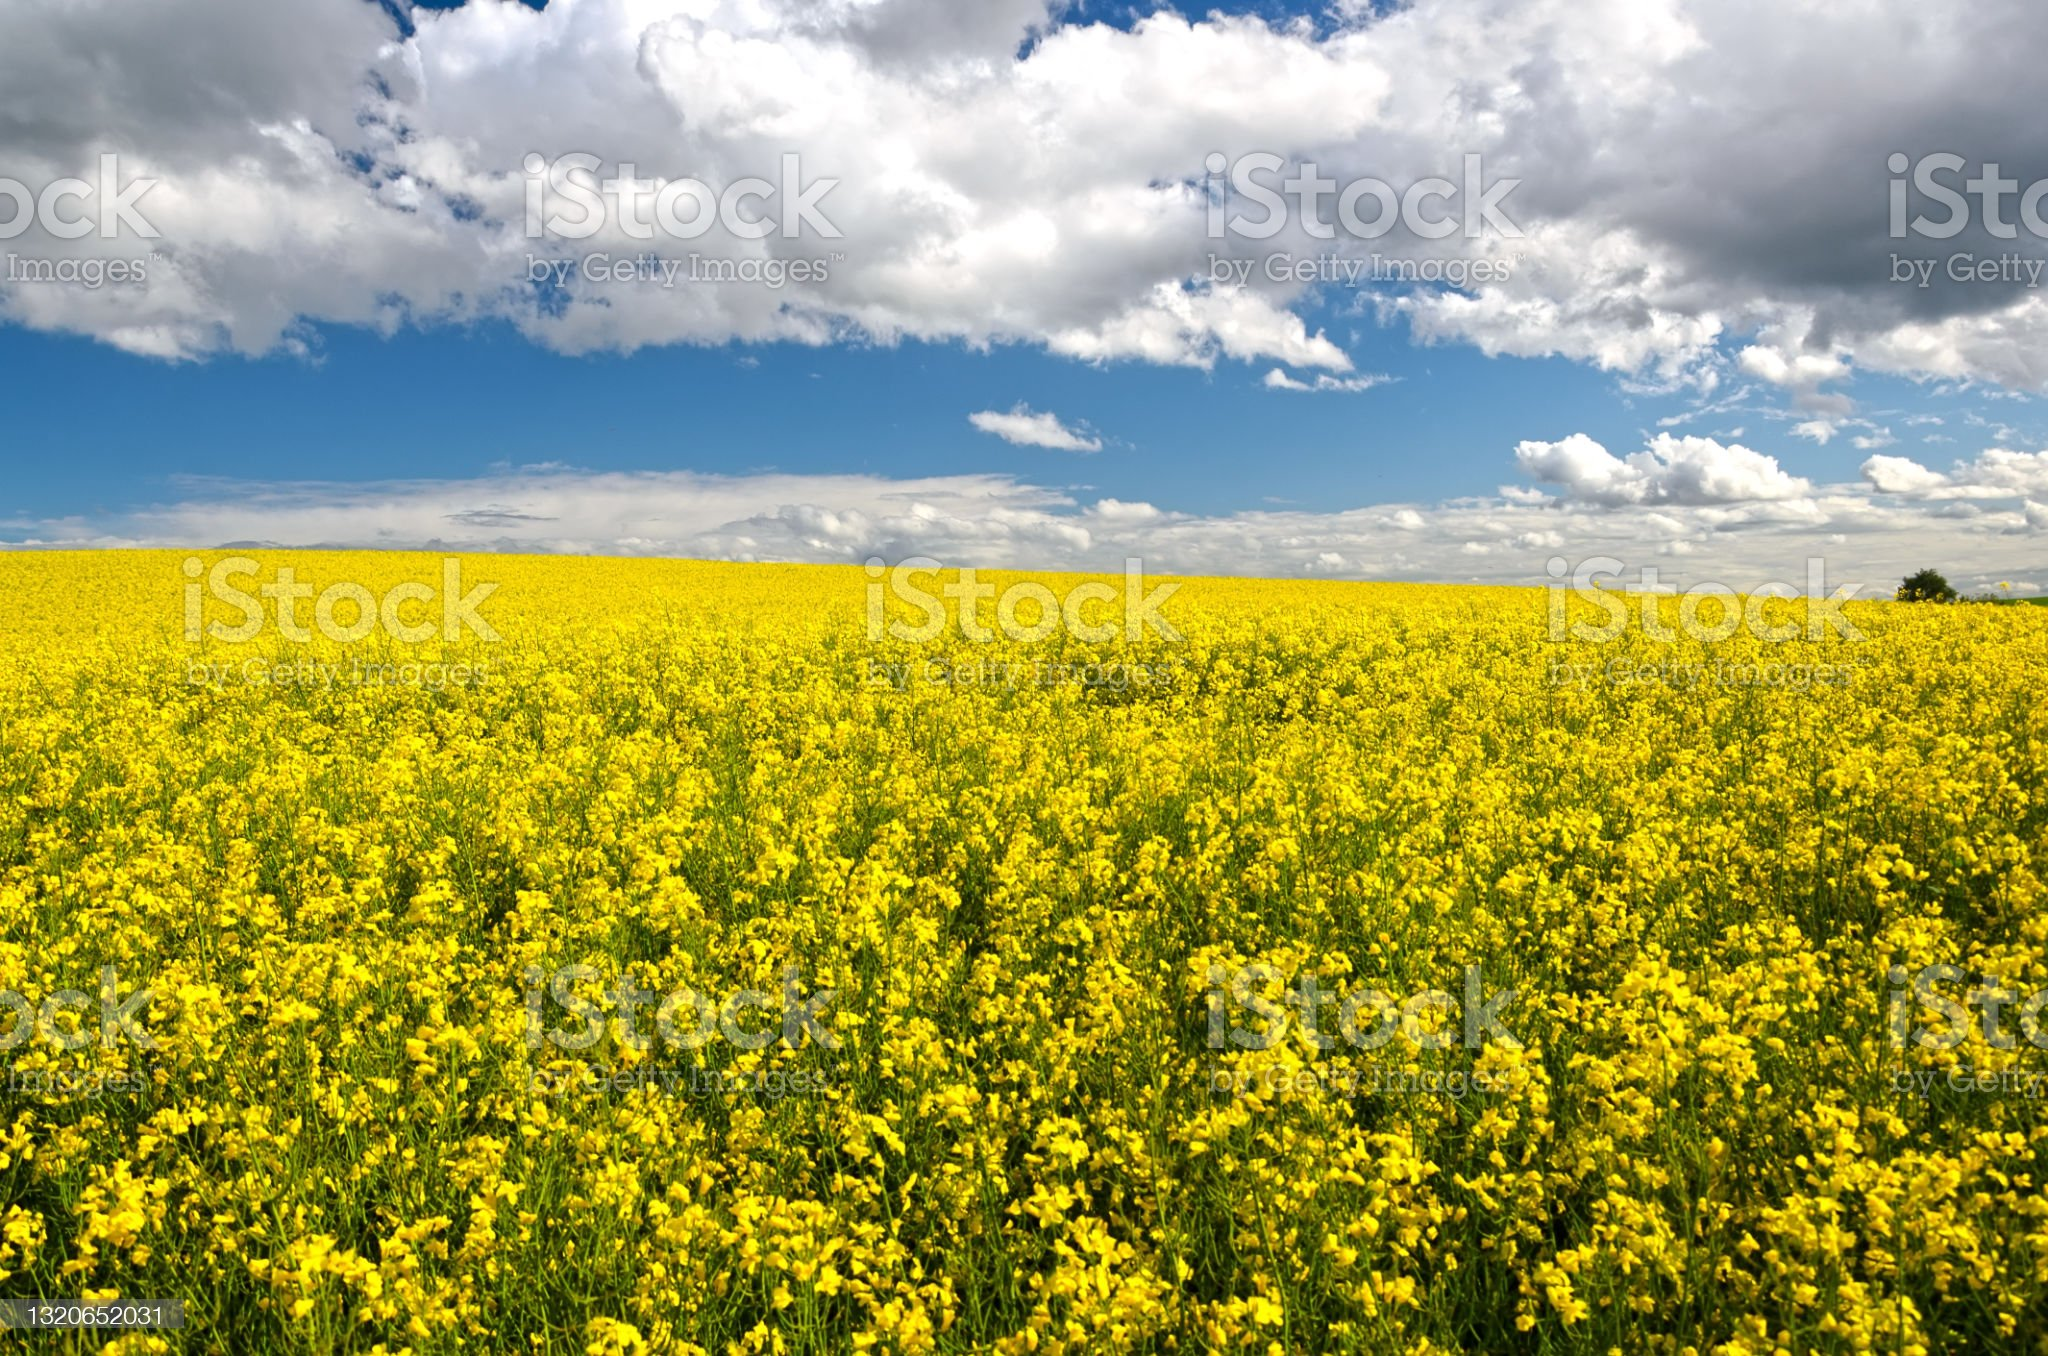 rapeseed-field-picture-id1320652031?s=20